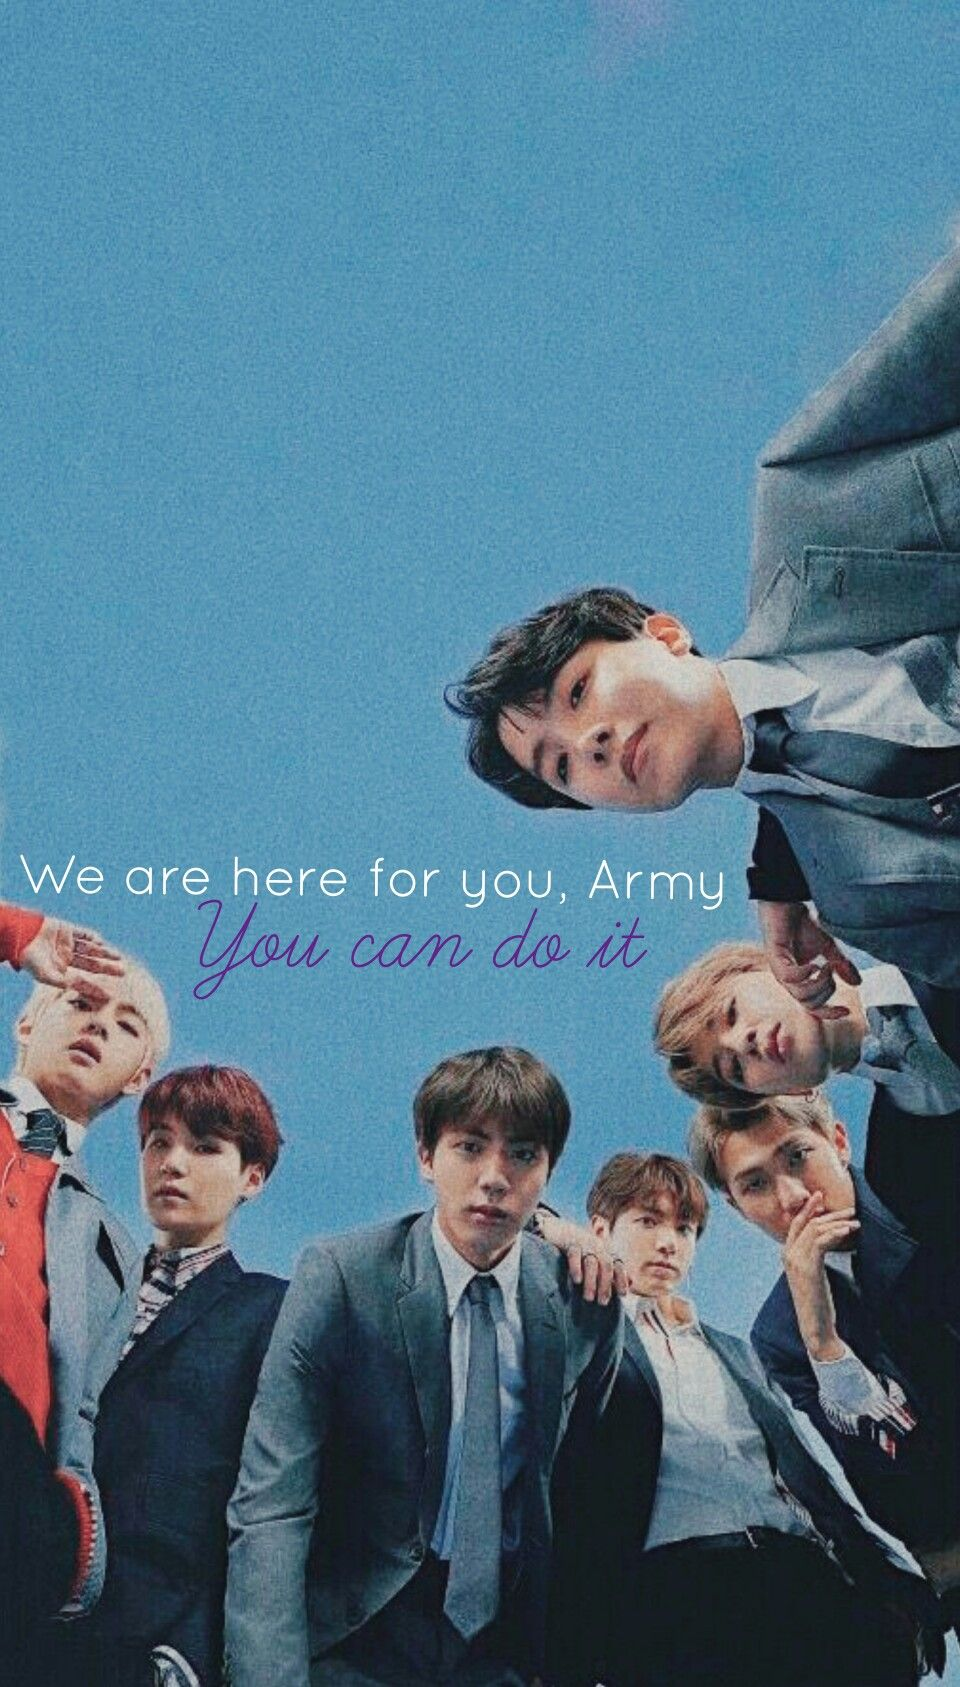 We Are Here For You Army You Can Do It Bts Inspirational Wallpaper Bts Quotes Bts Qoutes Bts Lyrics Quotes Bts inspirational quotes wallpaper